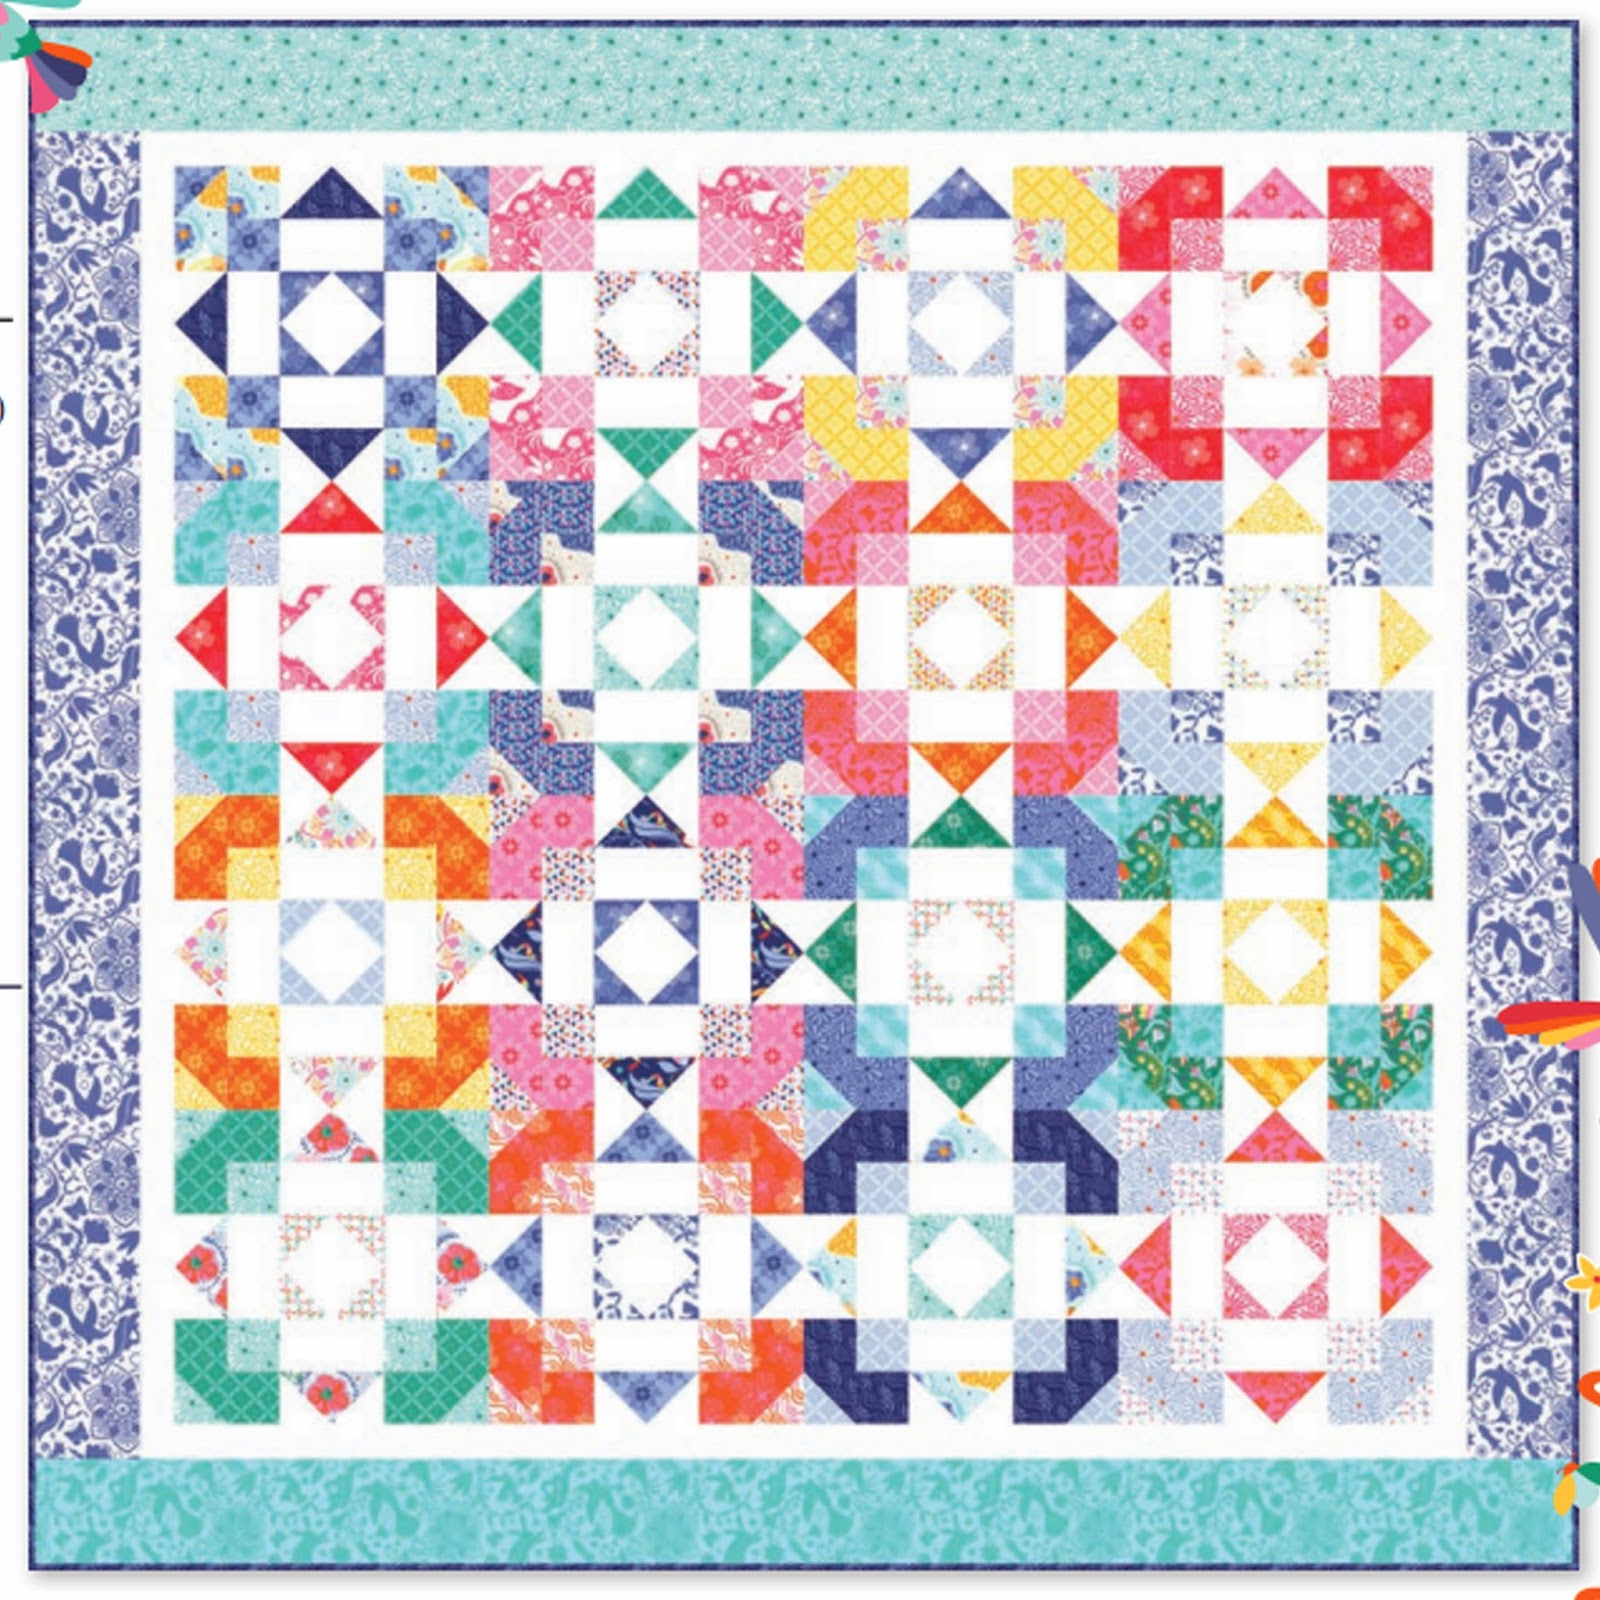 Moda DAYDREAM DAYDREAMS Free Quilt Pattern Kate Spain